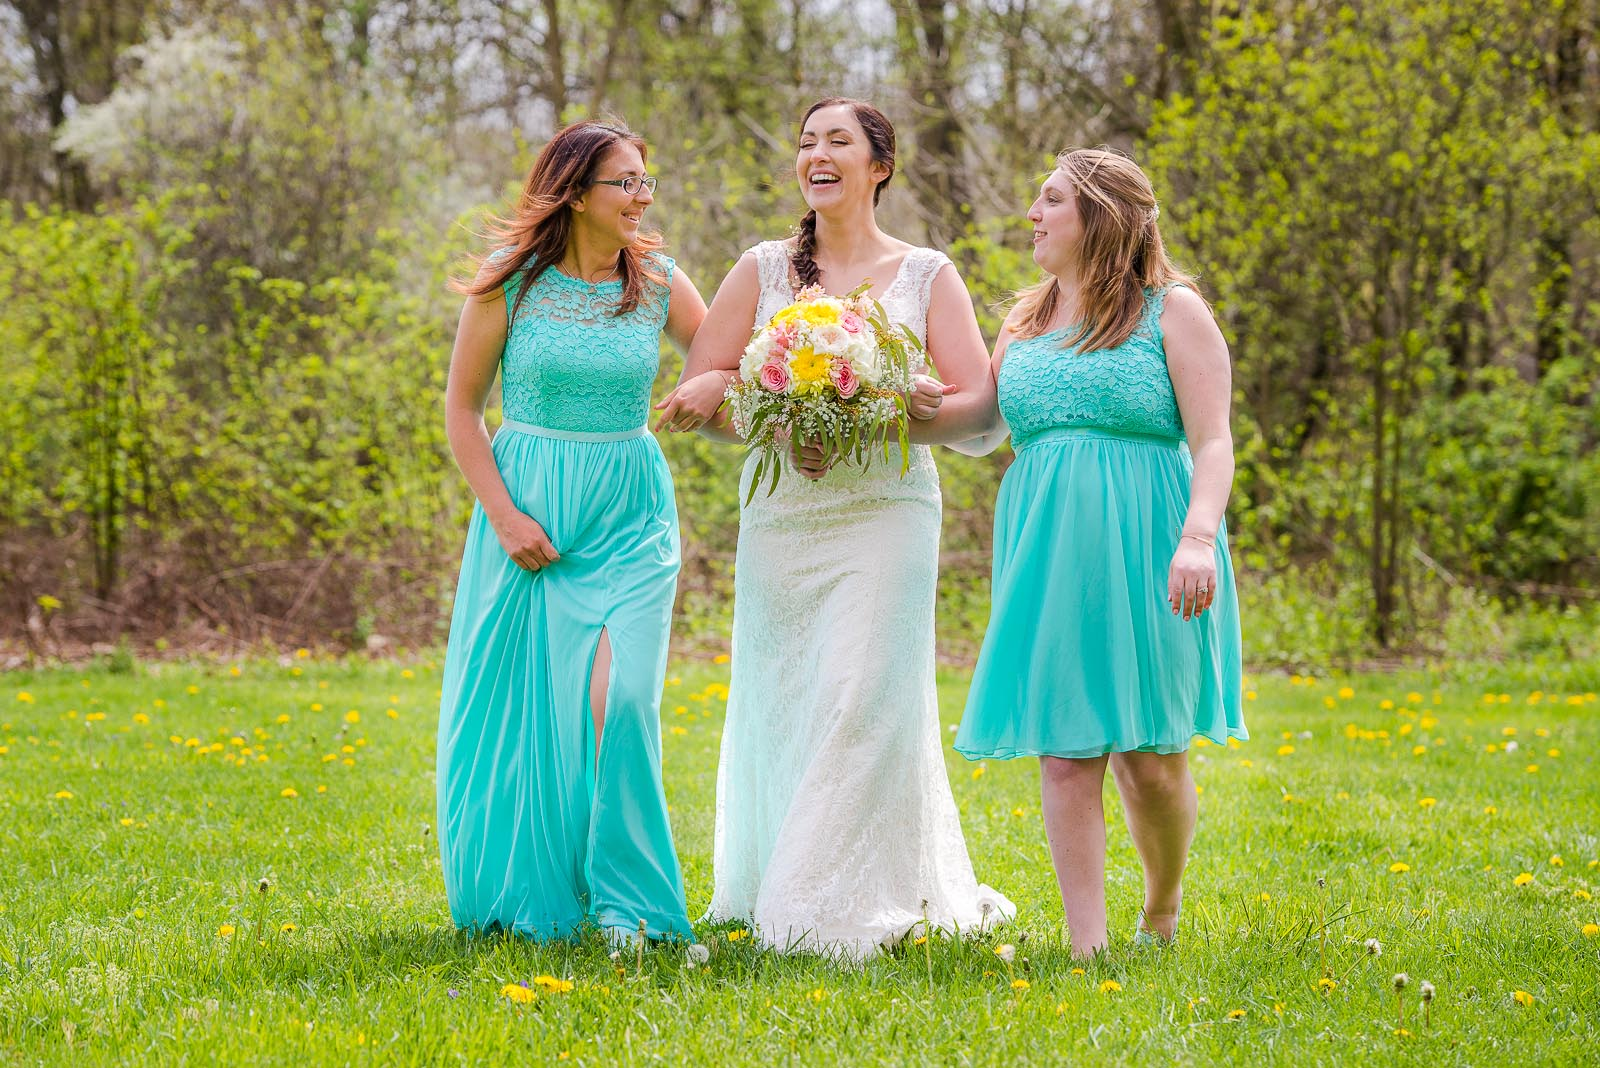 Eric_and_Christy_Photography_Blog_Katie_Travis_Wedding-38